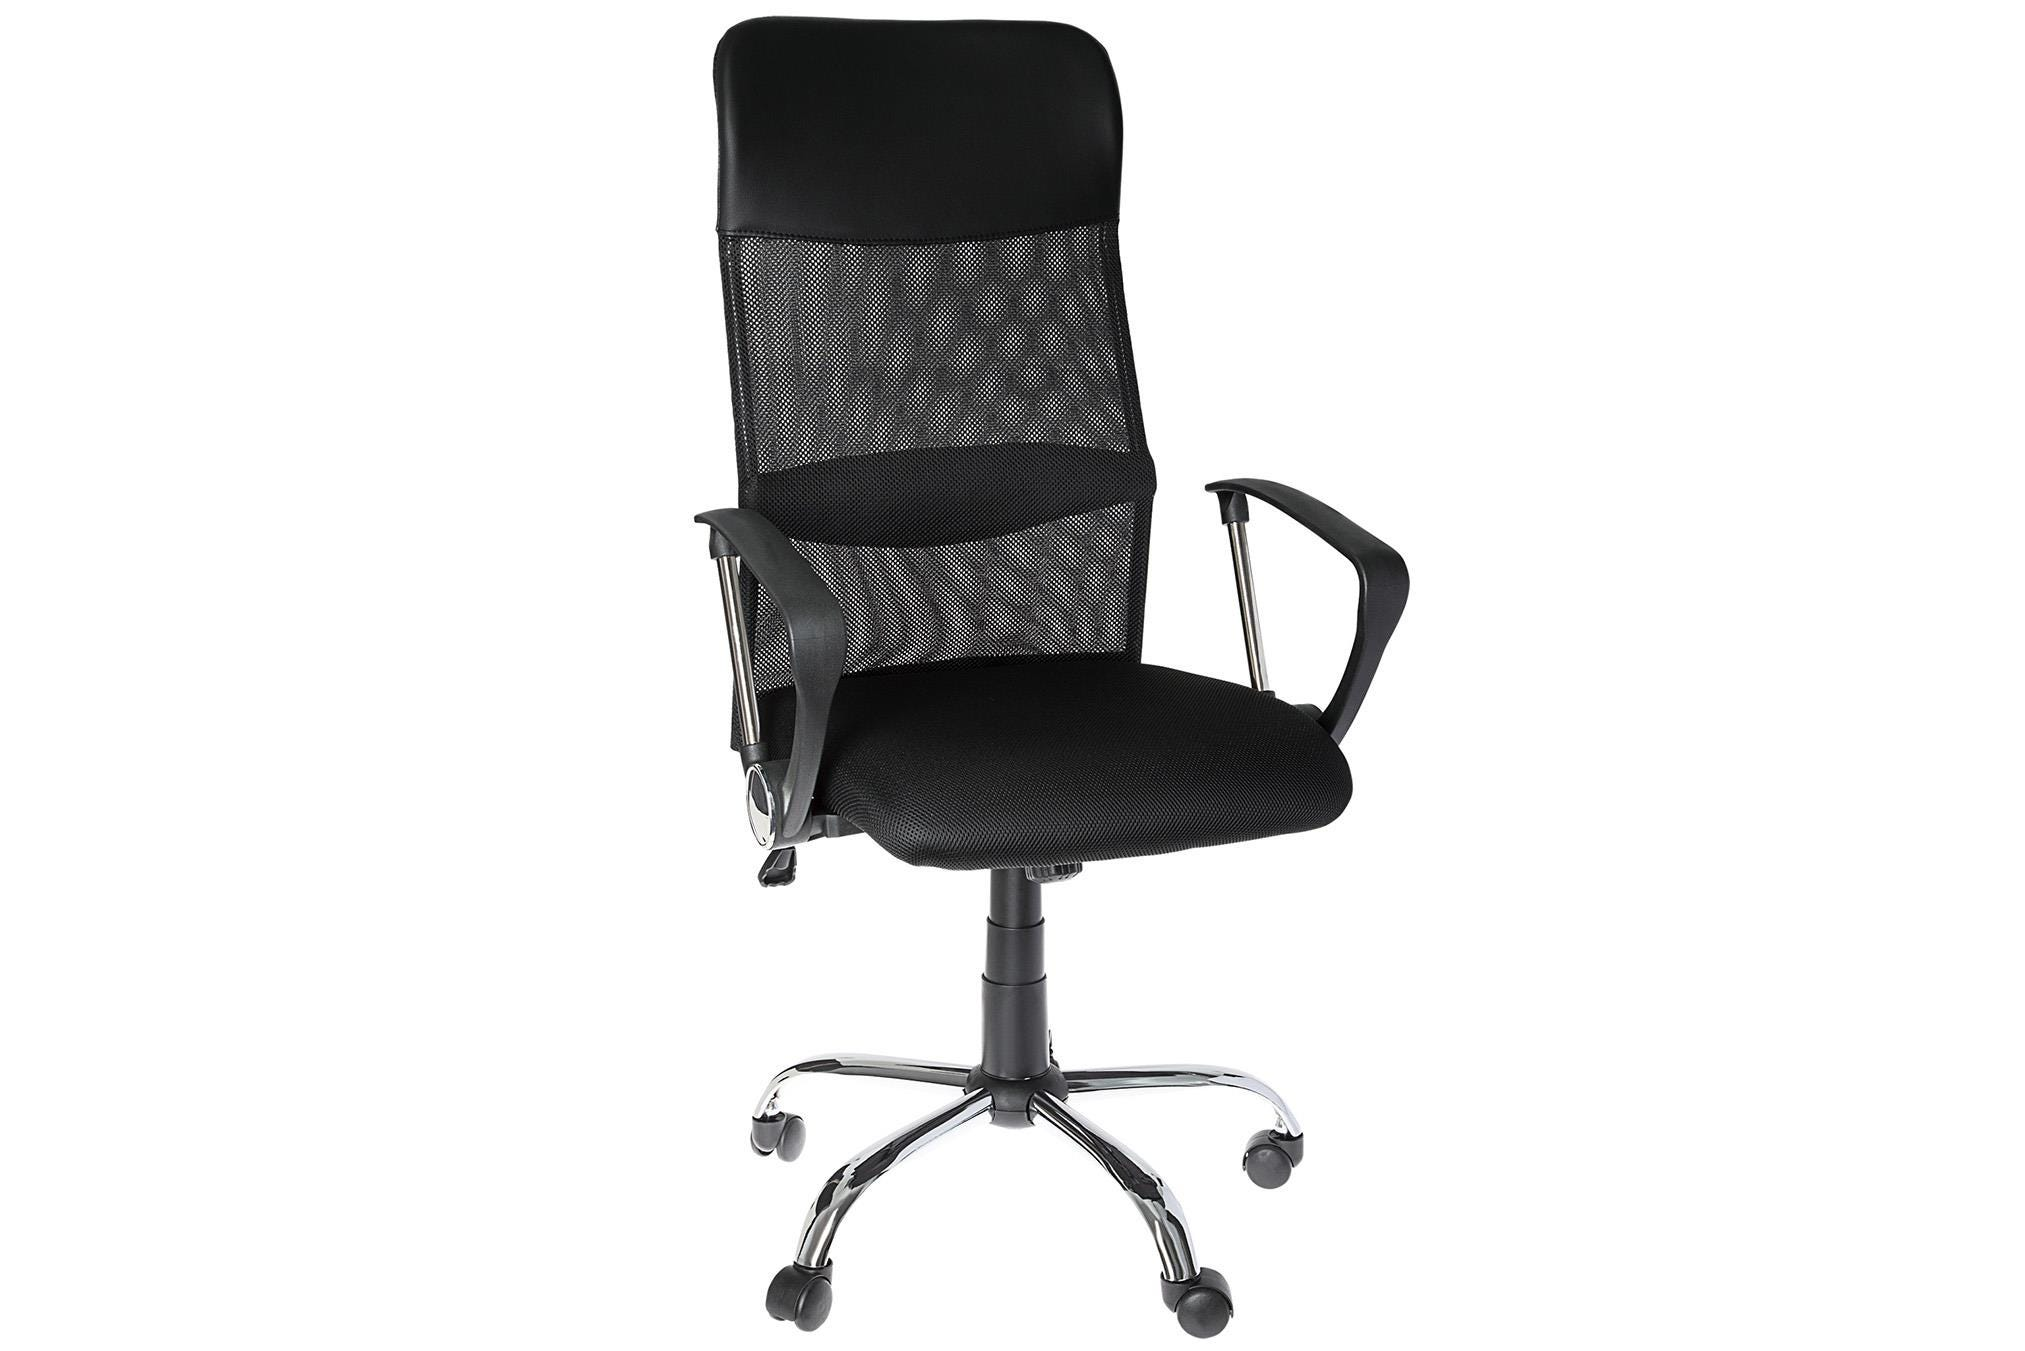 ProperAV Premium High-Back Leatherette Mesh Fabric Office Chair